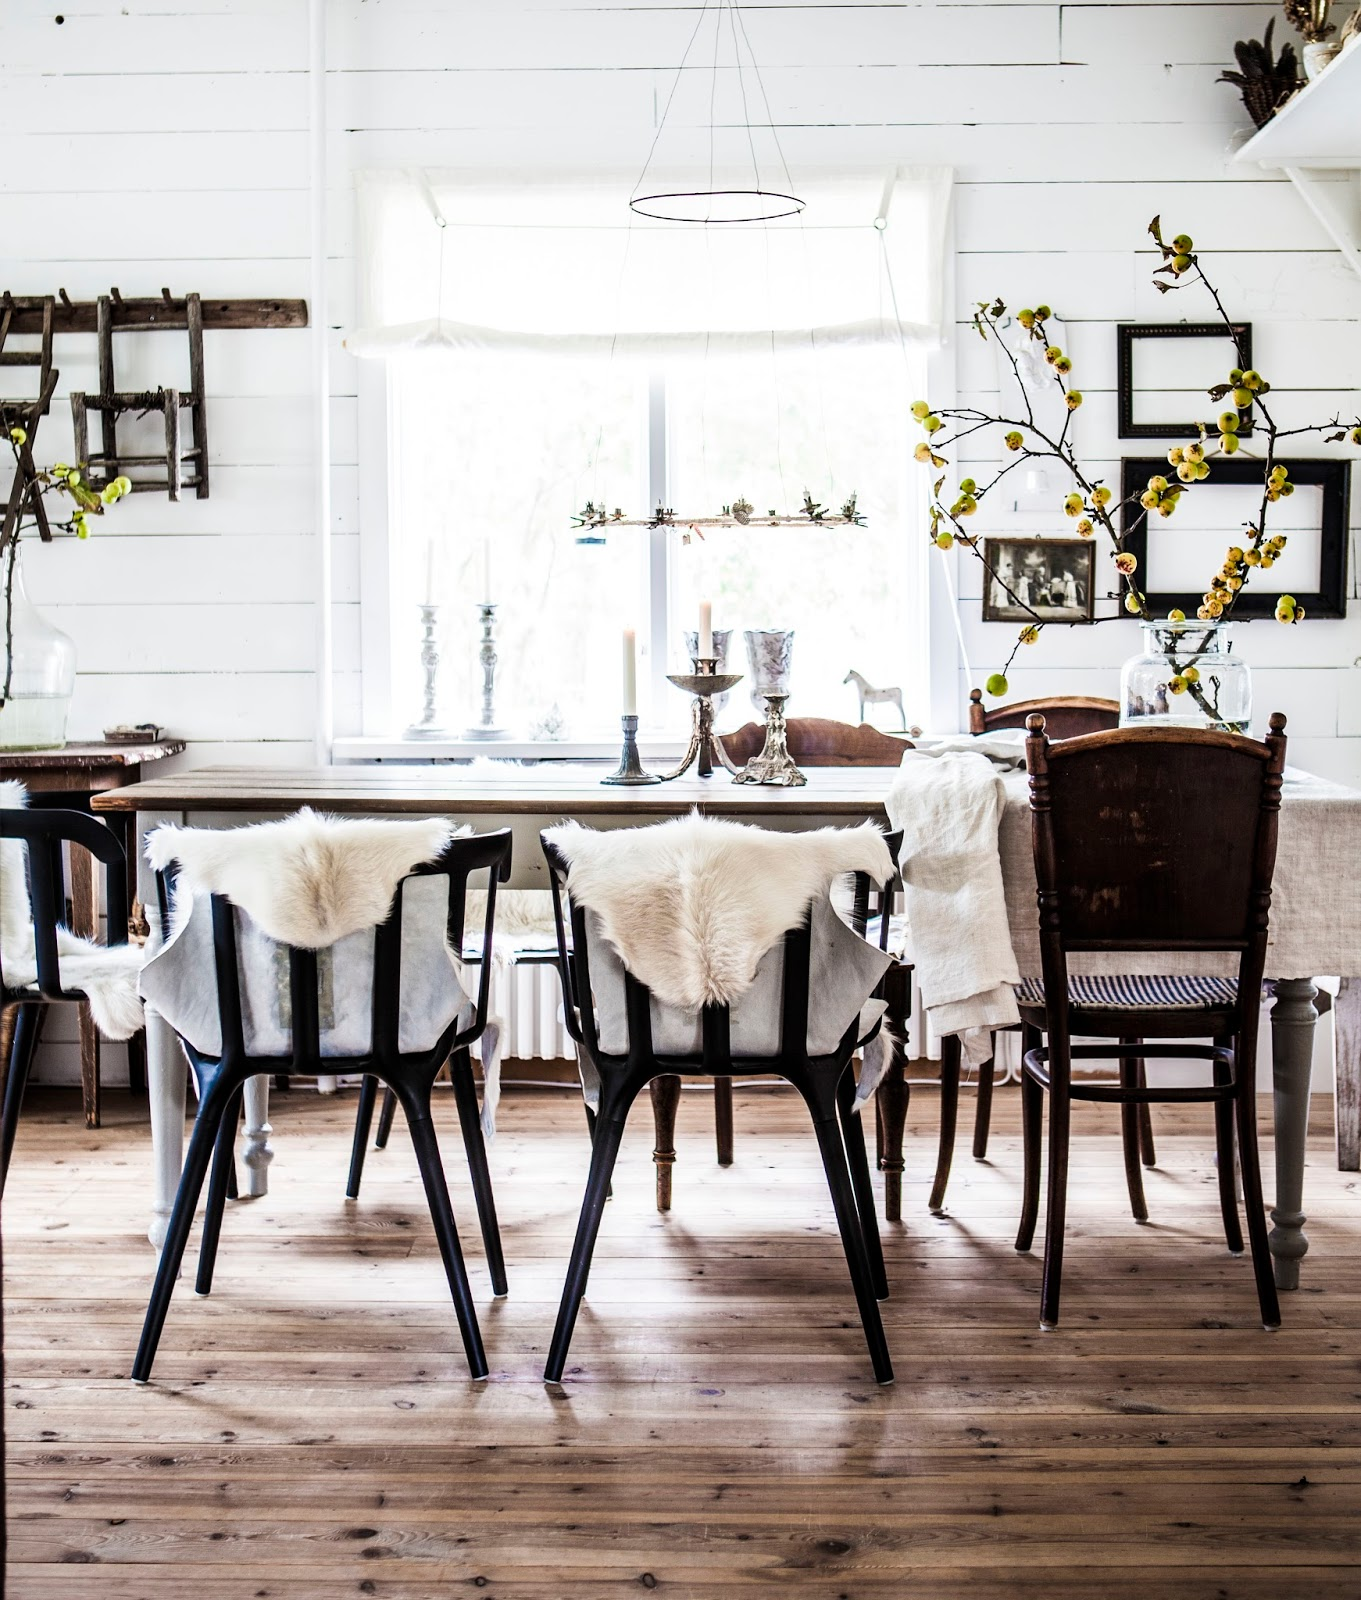 12 Rustic Dining Room Ideas: 15 Nature-Inspired Holiday Decorating Ideas